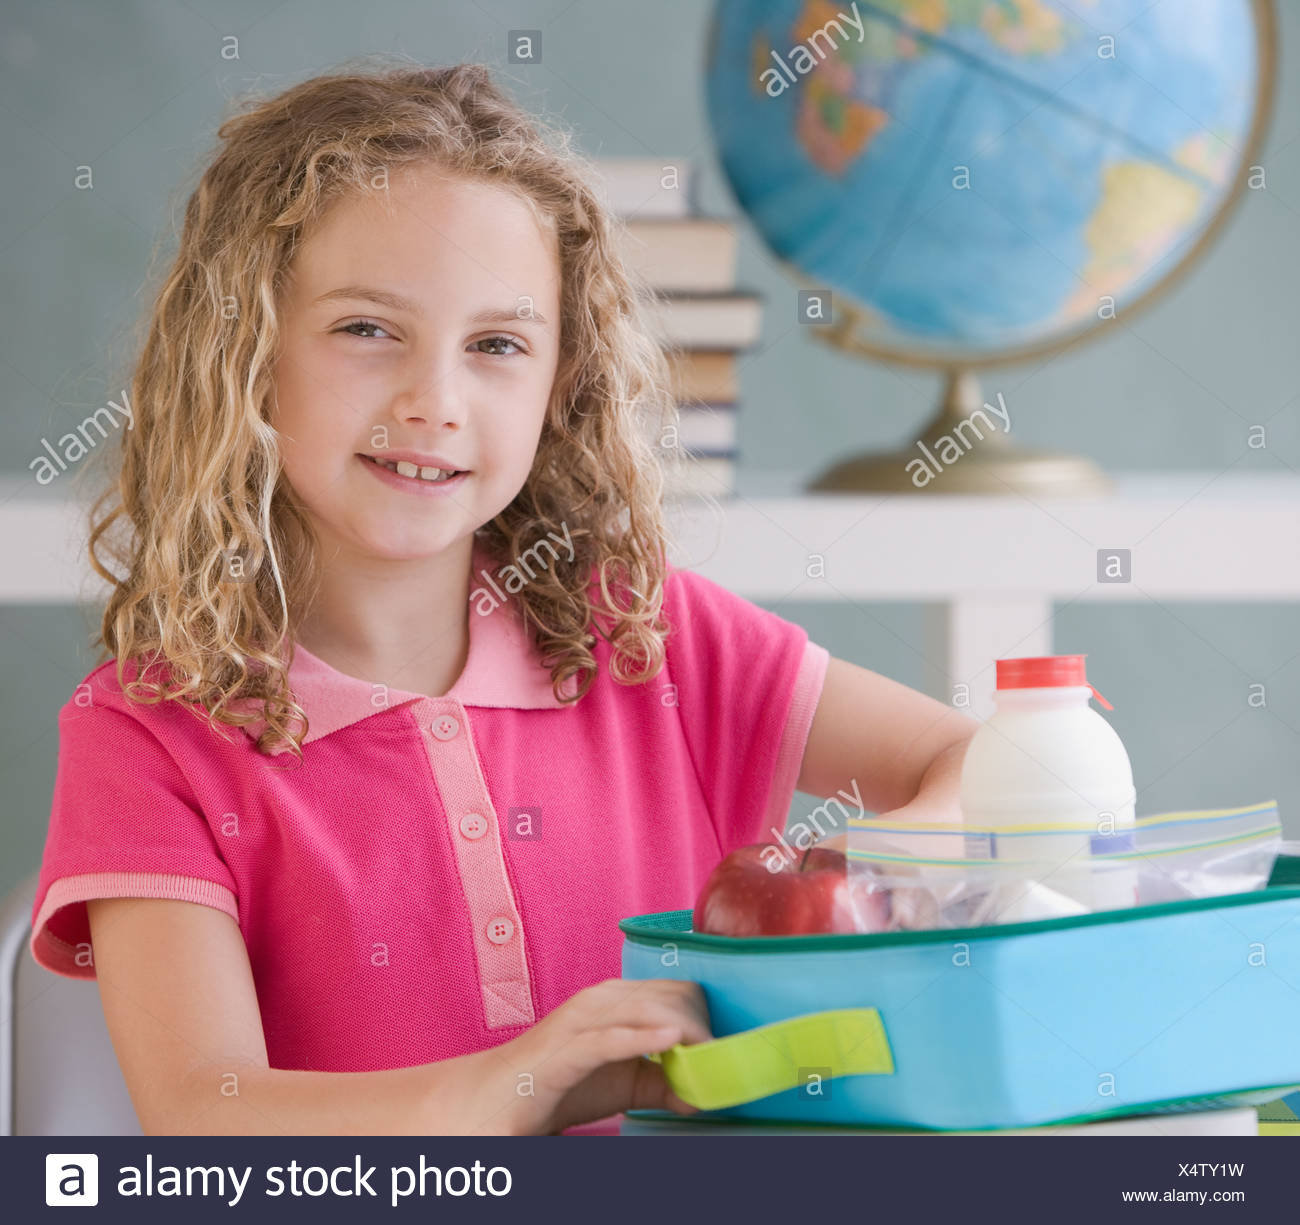 Girl eating lunch at school - Stock Image